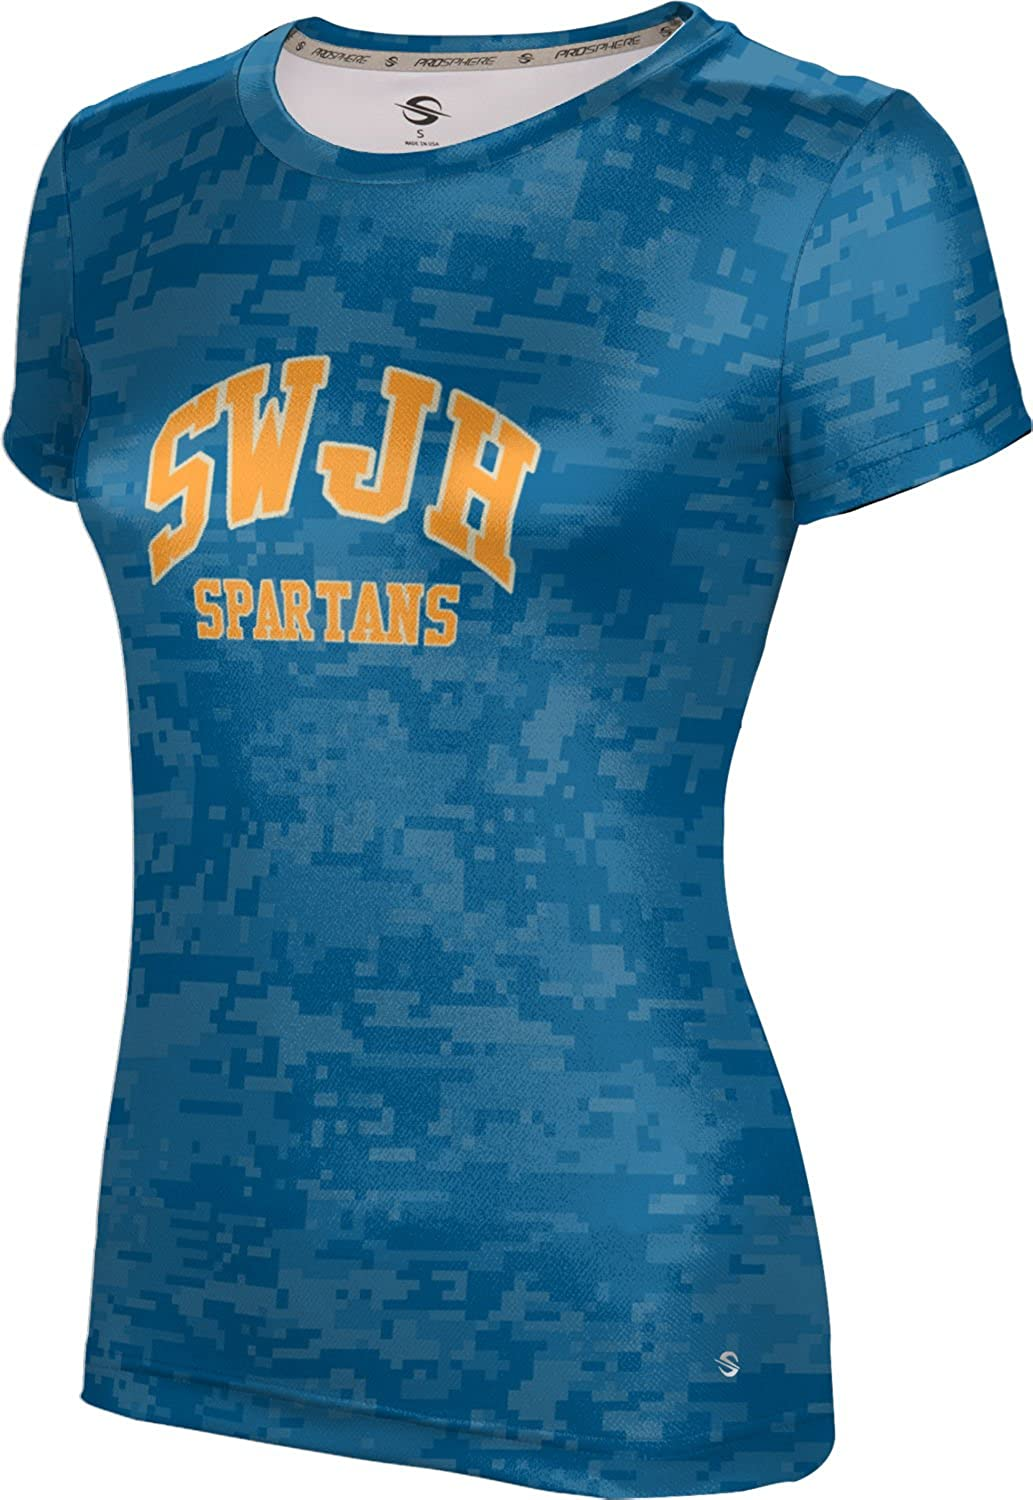 ProSphere Women's Stella Worley Junior High School Digital Tech Tee